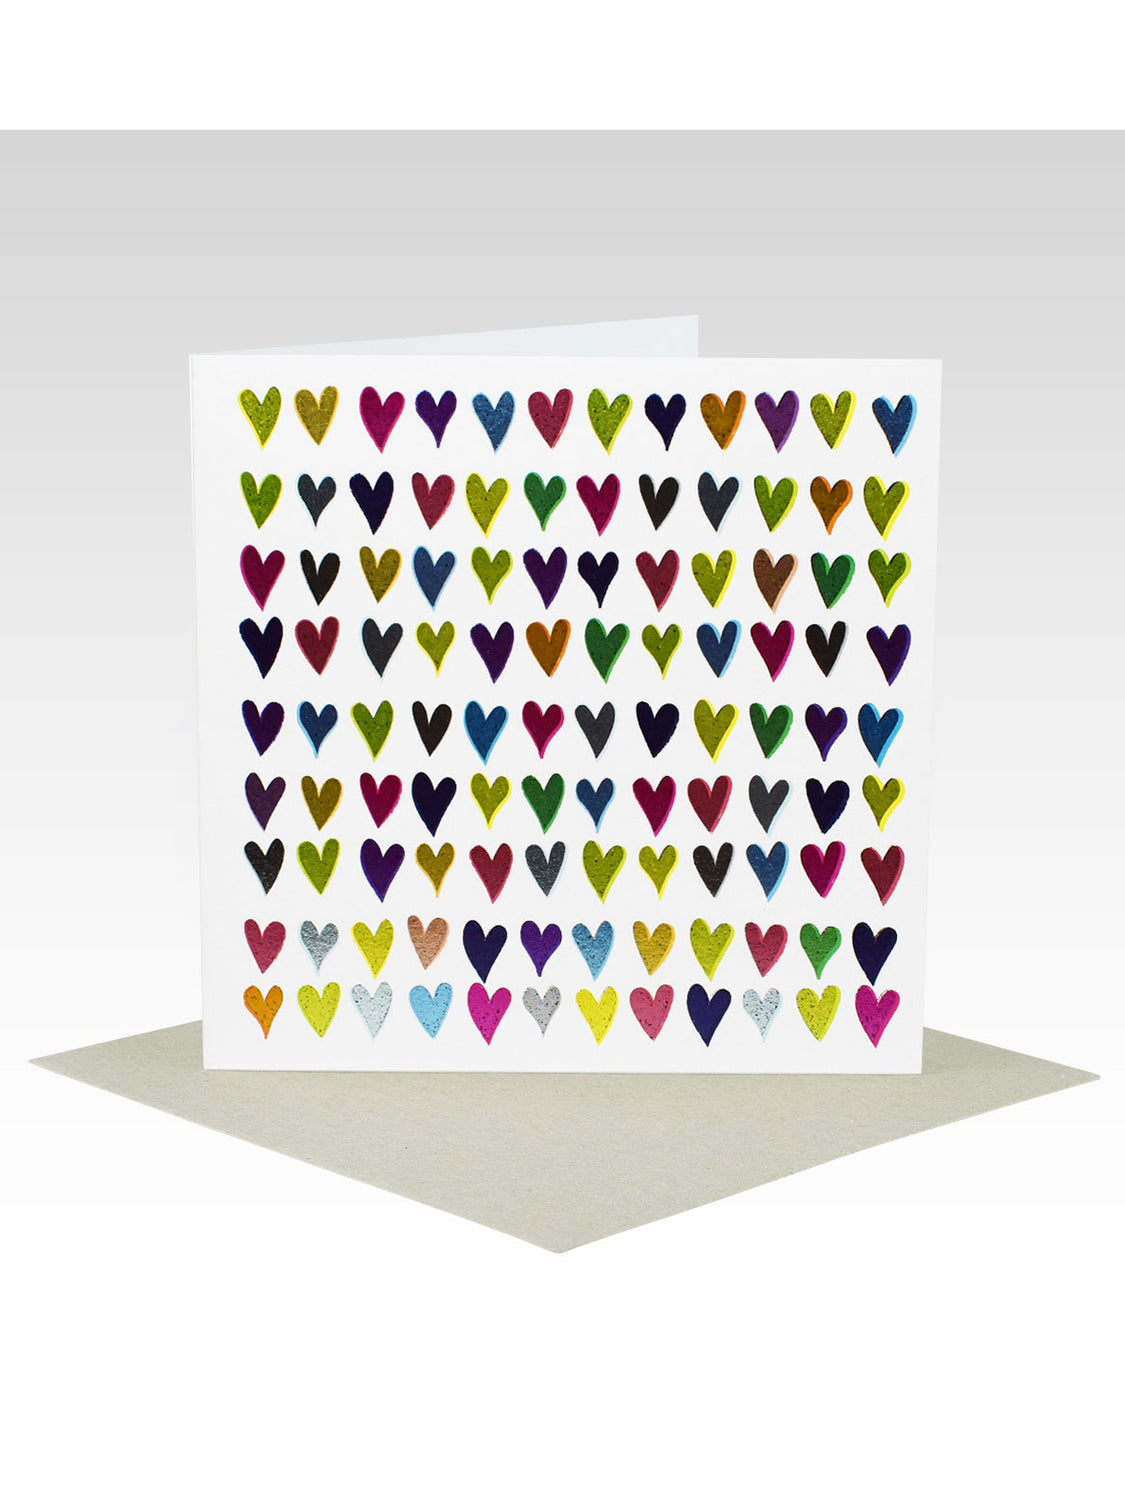 Multi Colour Foil Hearts from Rhicreative lightbox gift and home